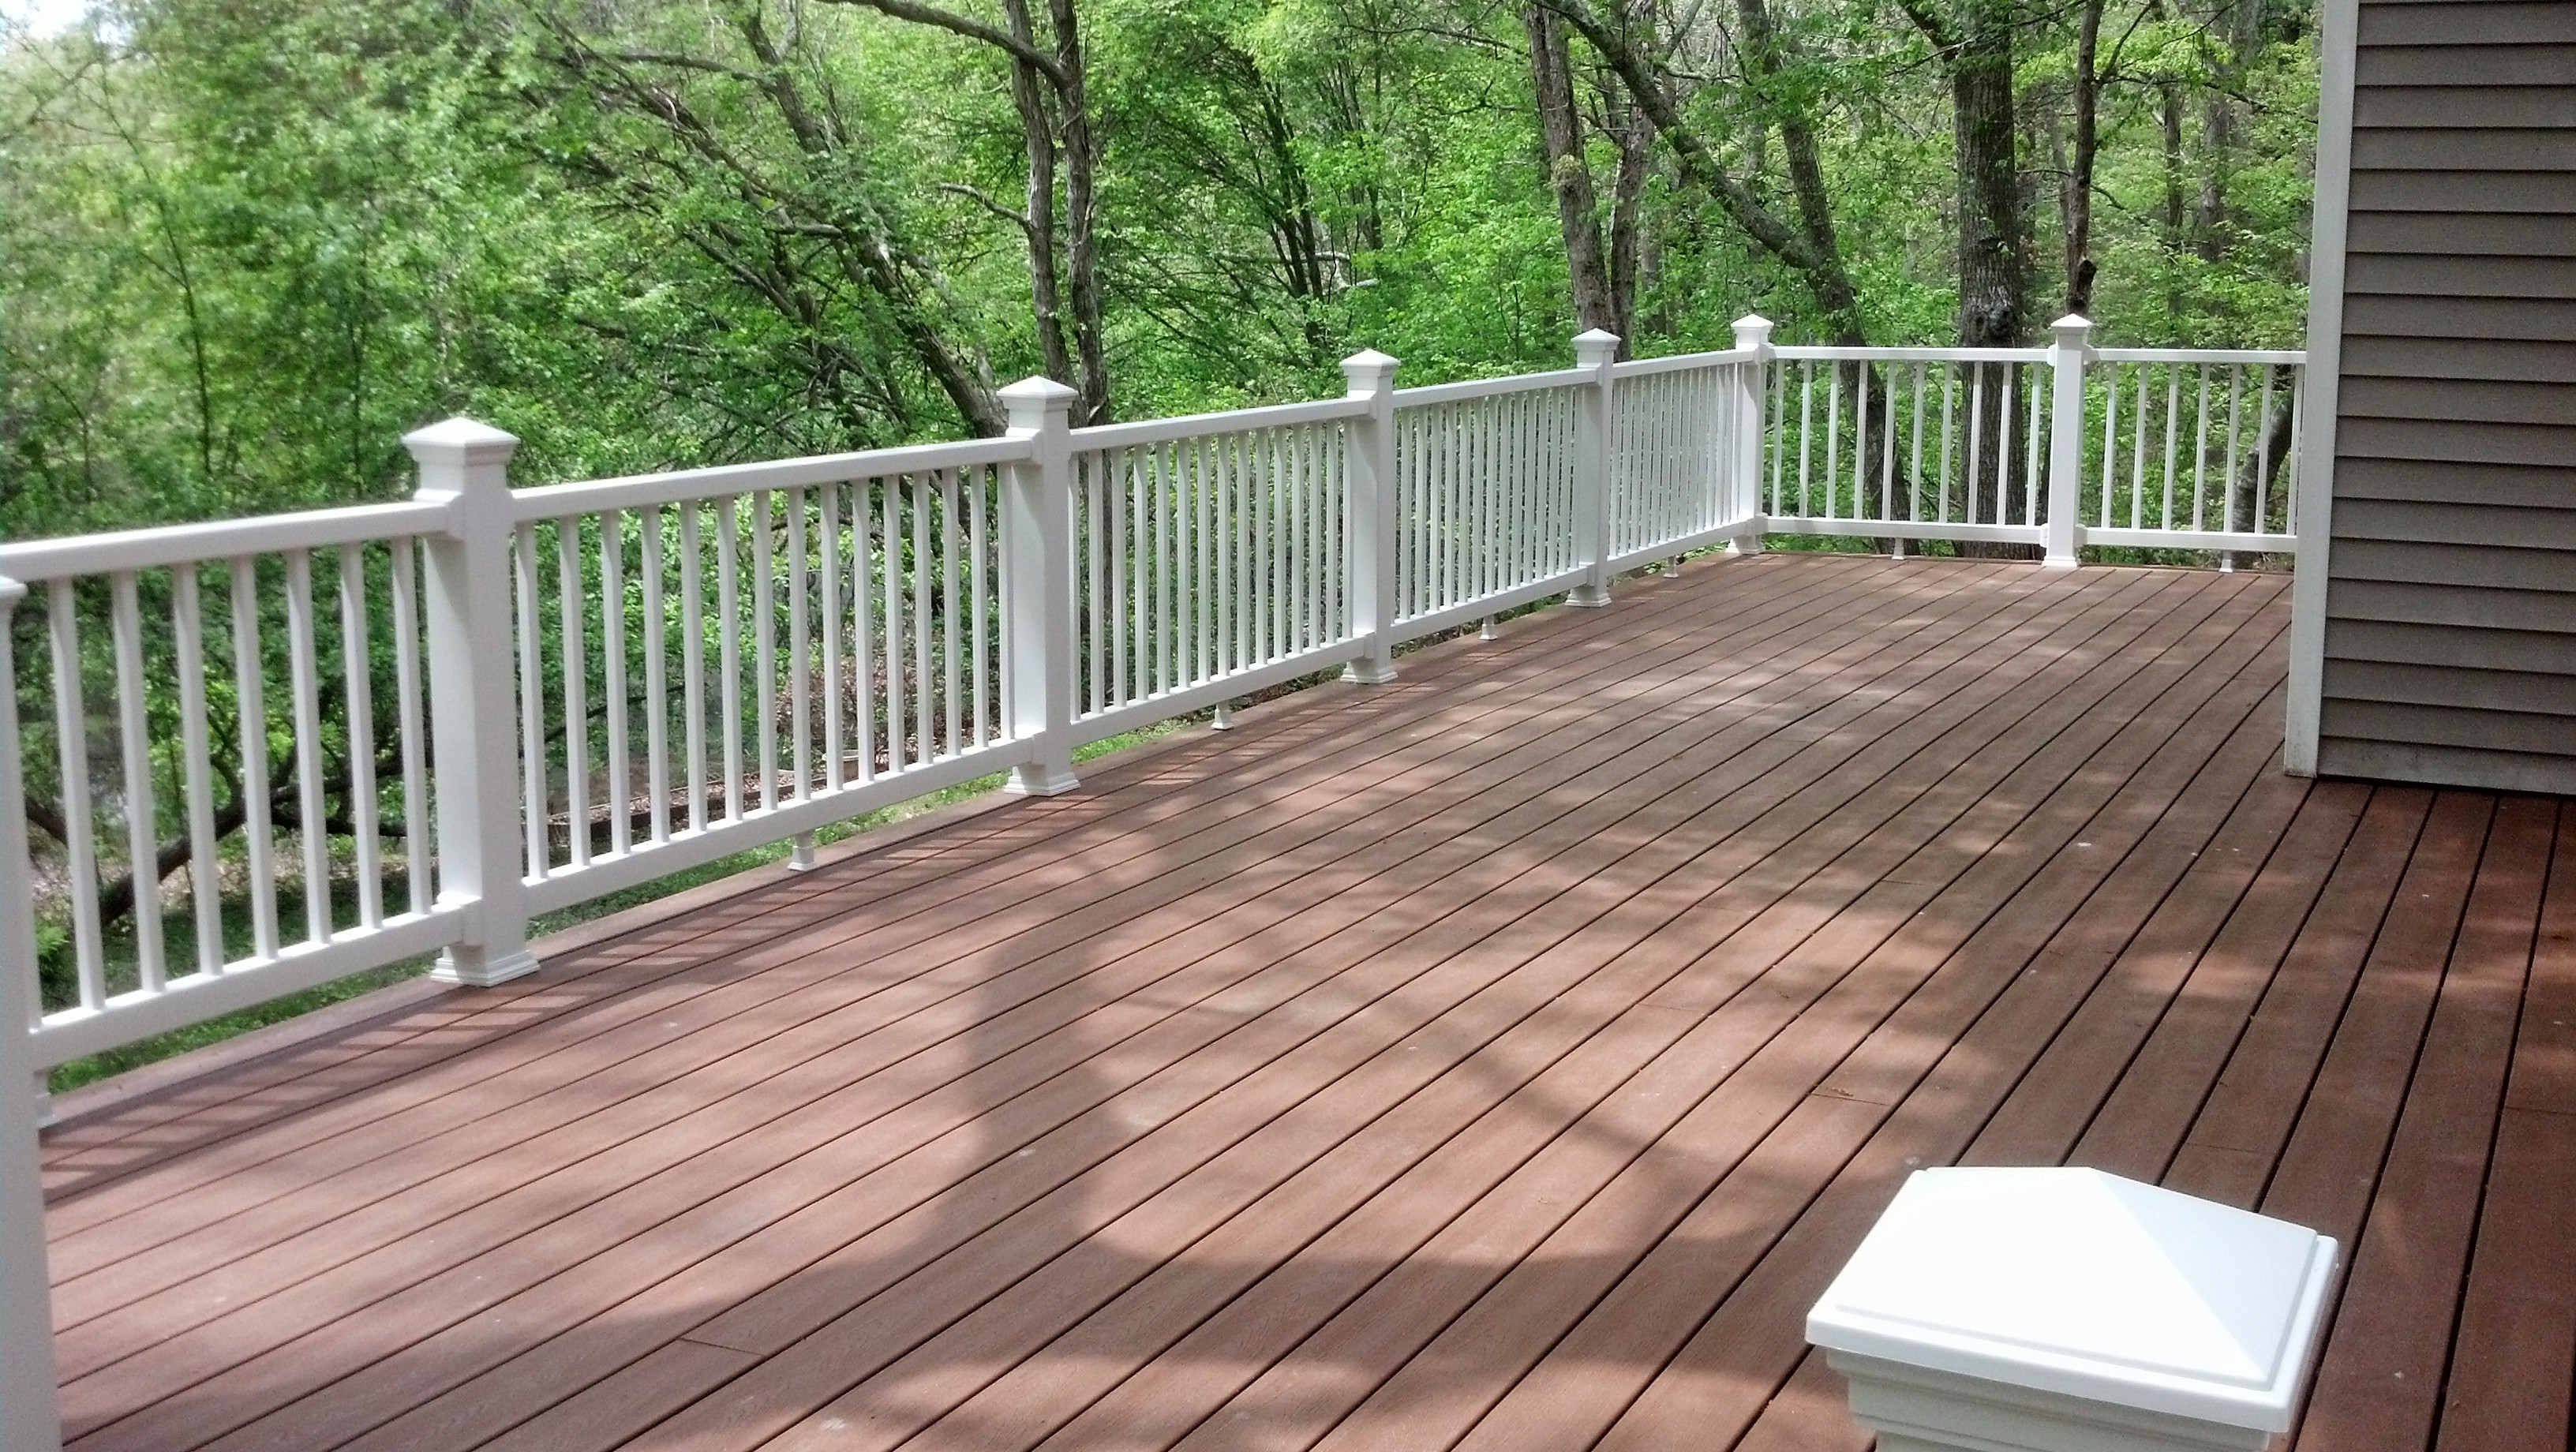 south county RI new deck install